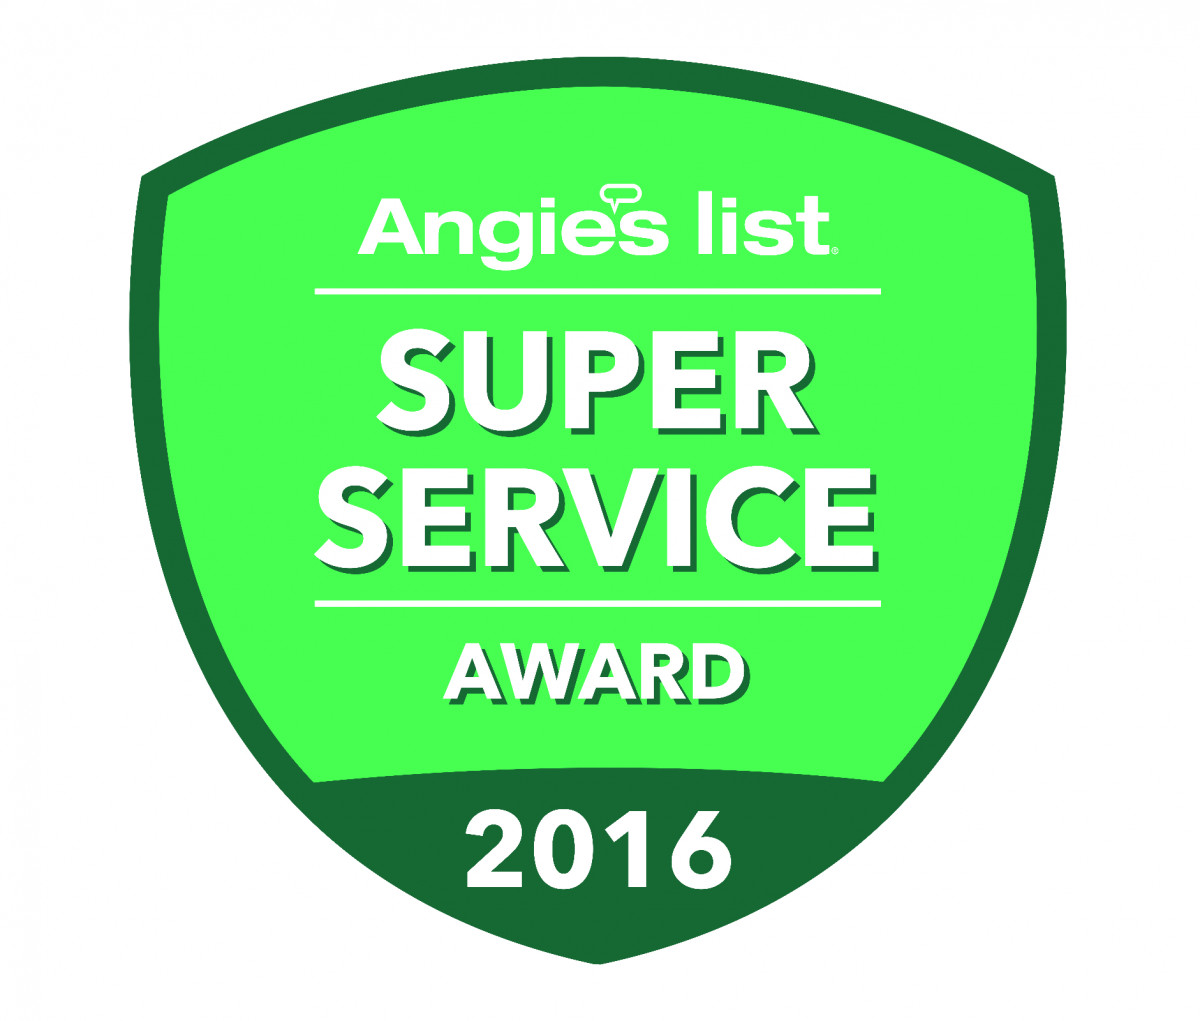 Sky Power Wash were awarded the 2016 Super Service Award from Angie's List